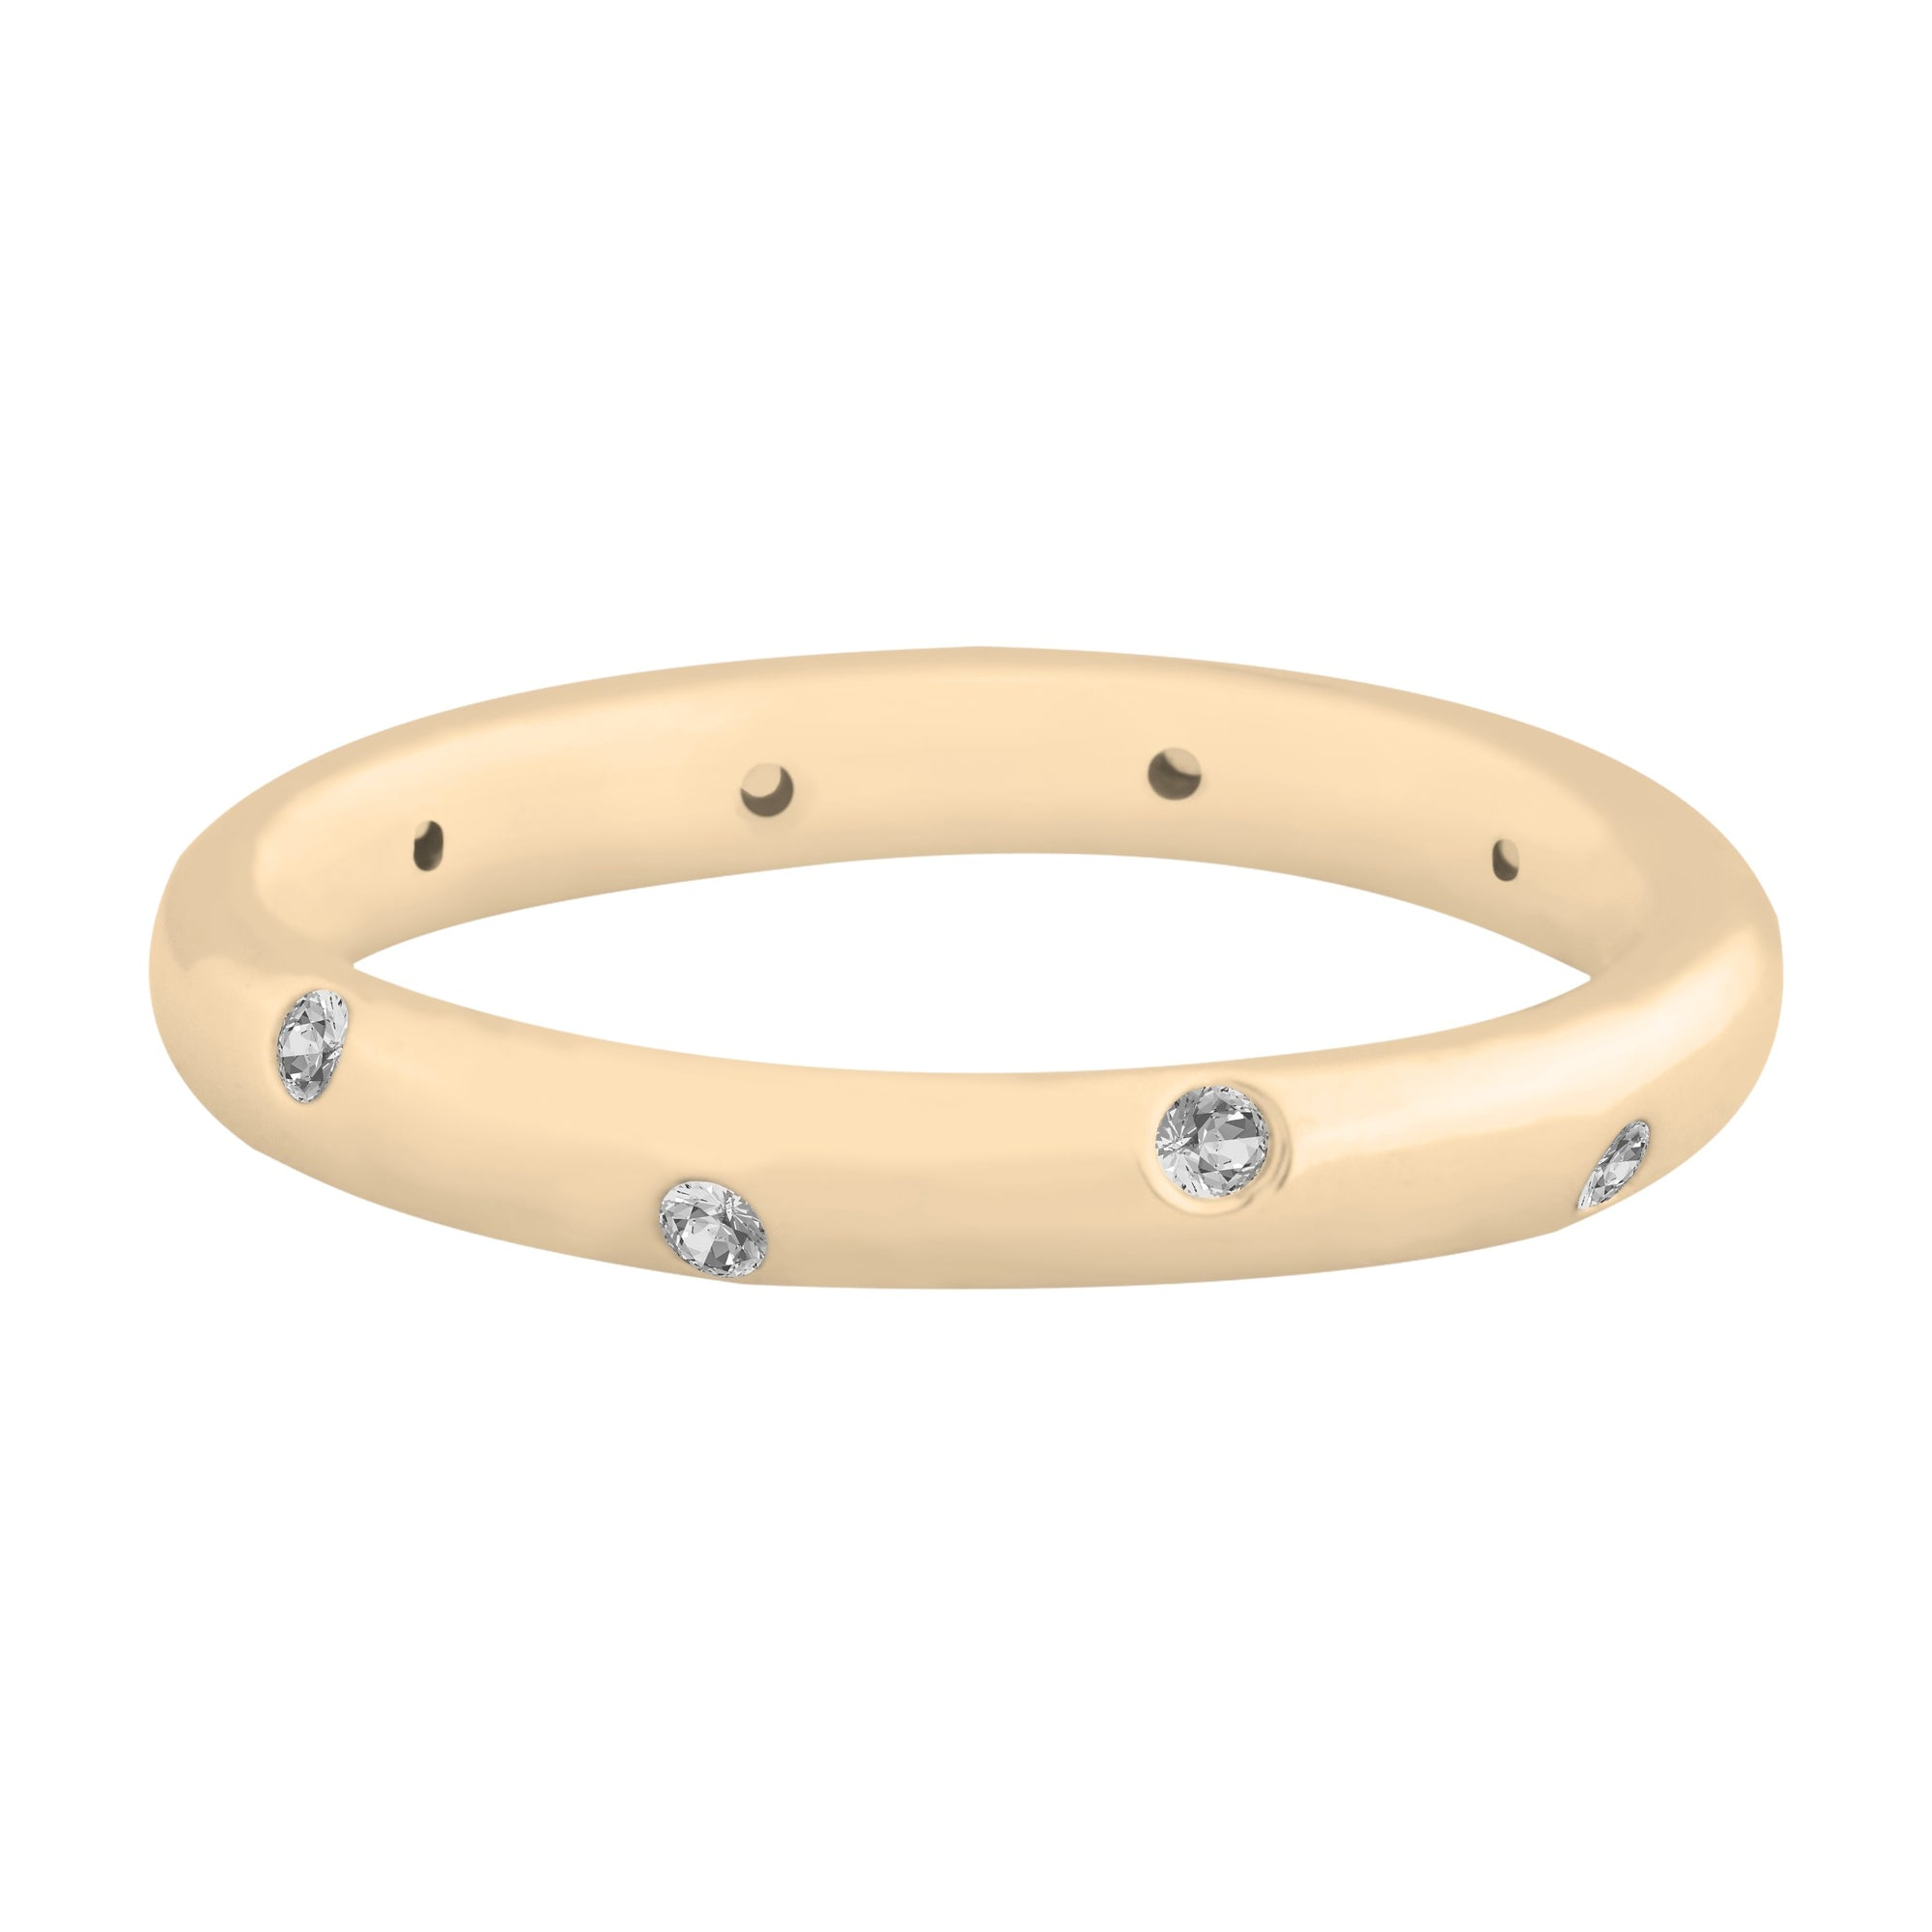 Reese Band Ring Forevercrystals